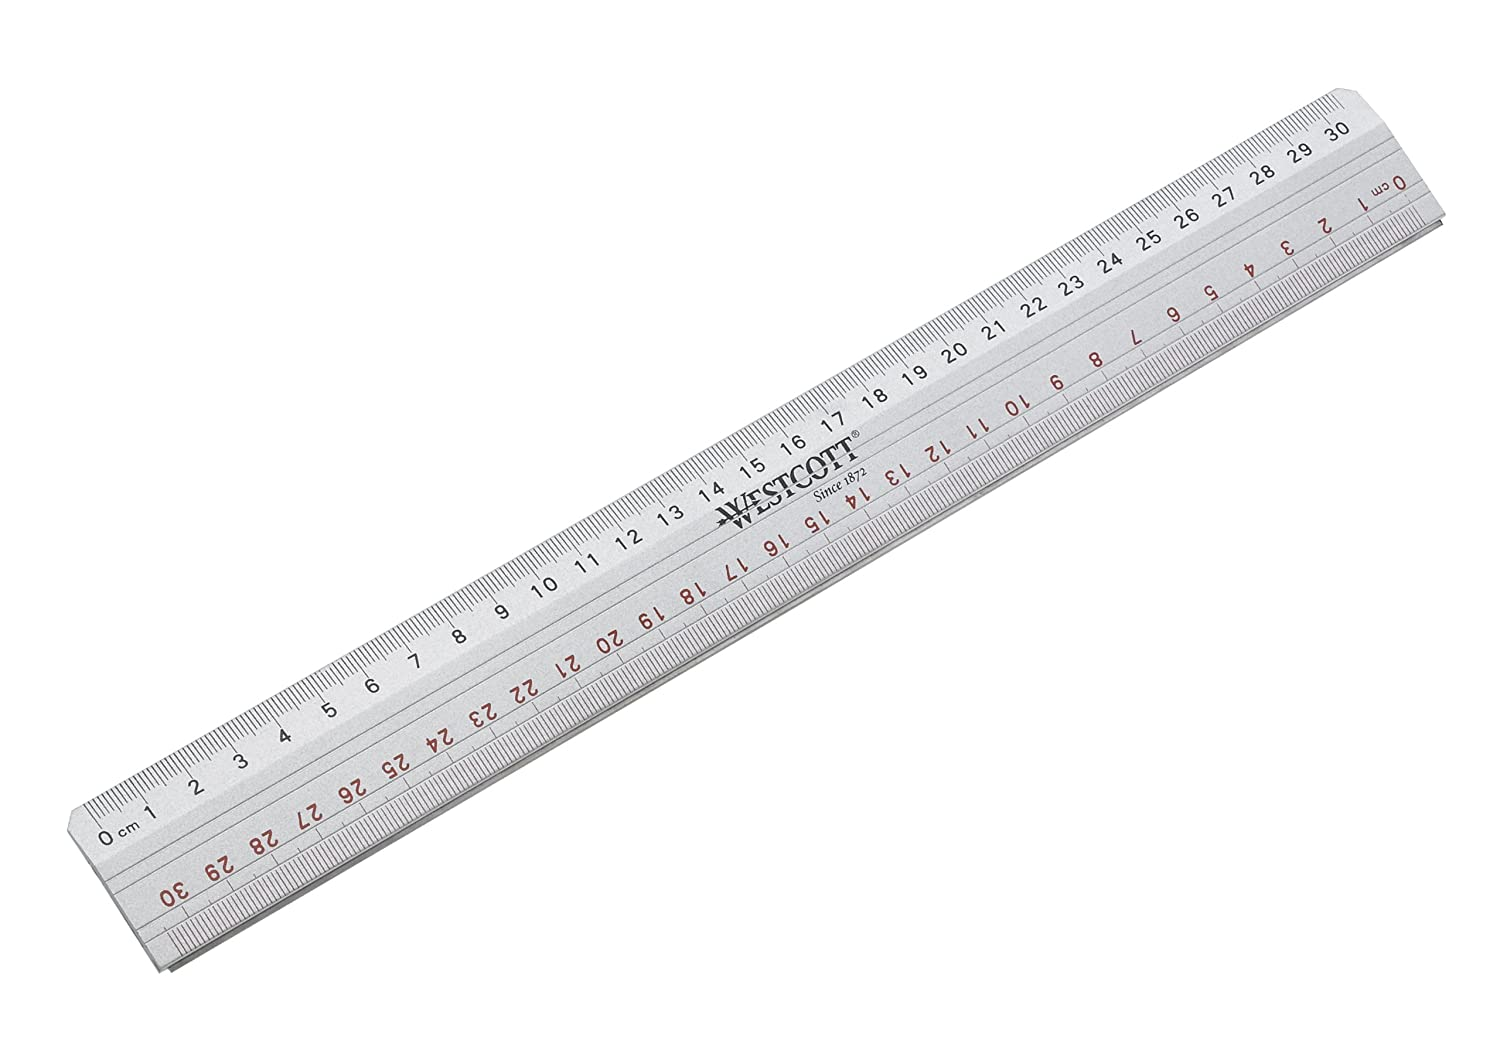 Acme United E-10112 00 - Righello in metallo, 30 cm, colore: Argento ACME United Europe GmbH